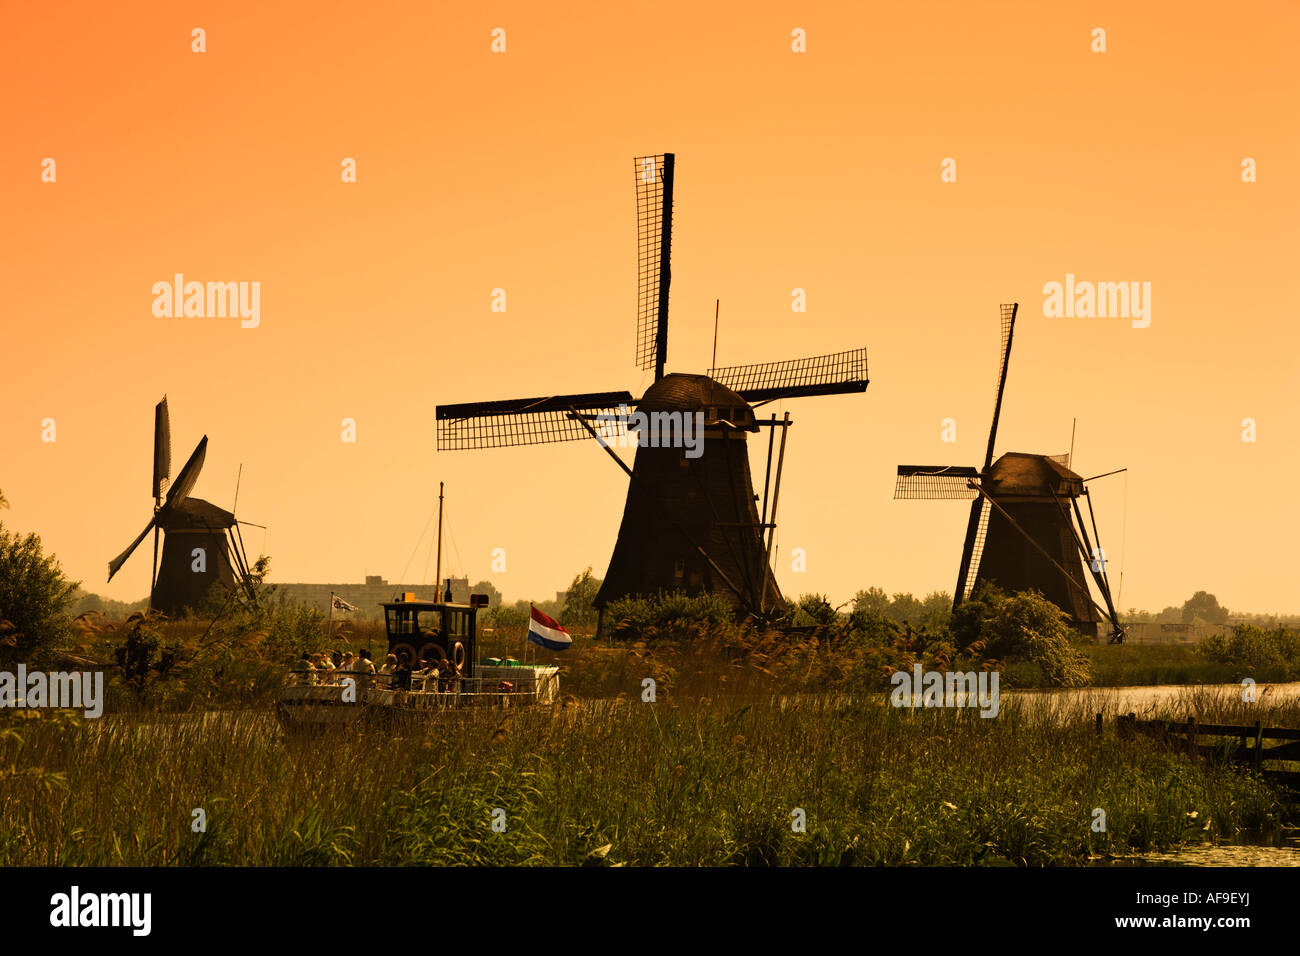 Tourist on a sightseeing cruise boat at sunset viewing the windmills at Kinderdijk, Holland - a UNESCO World Heritage - Stock Image